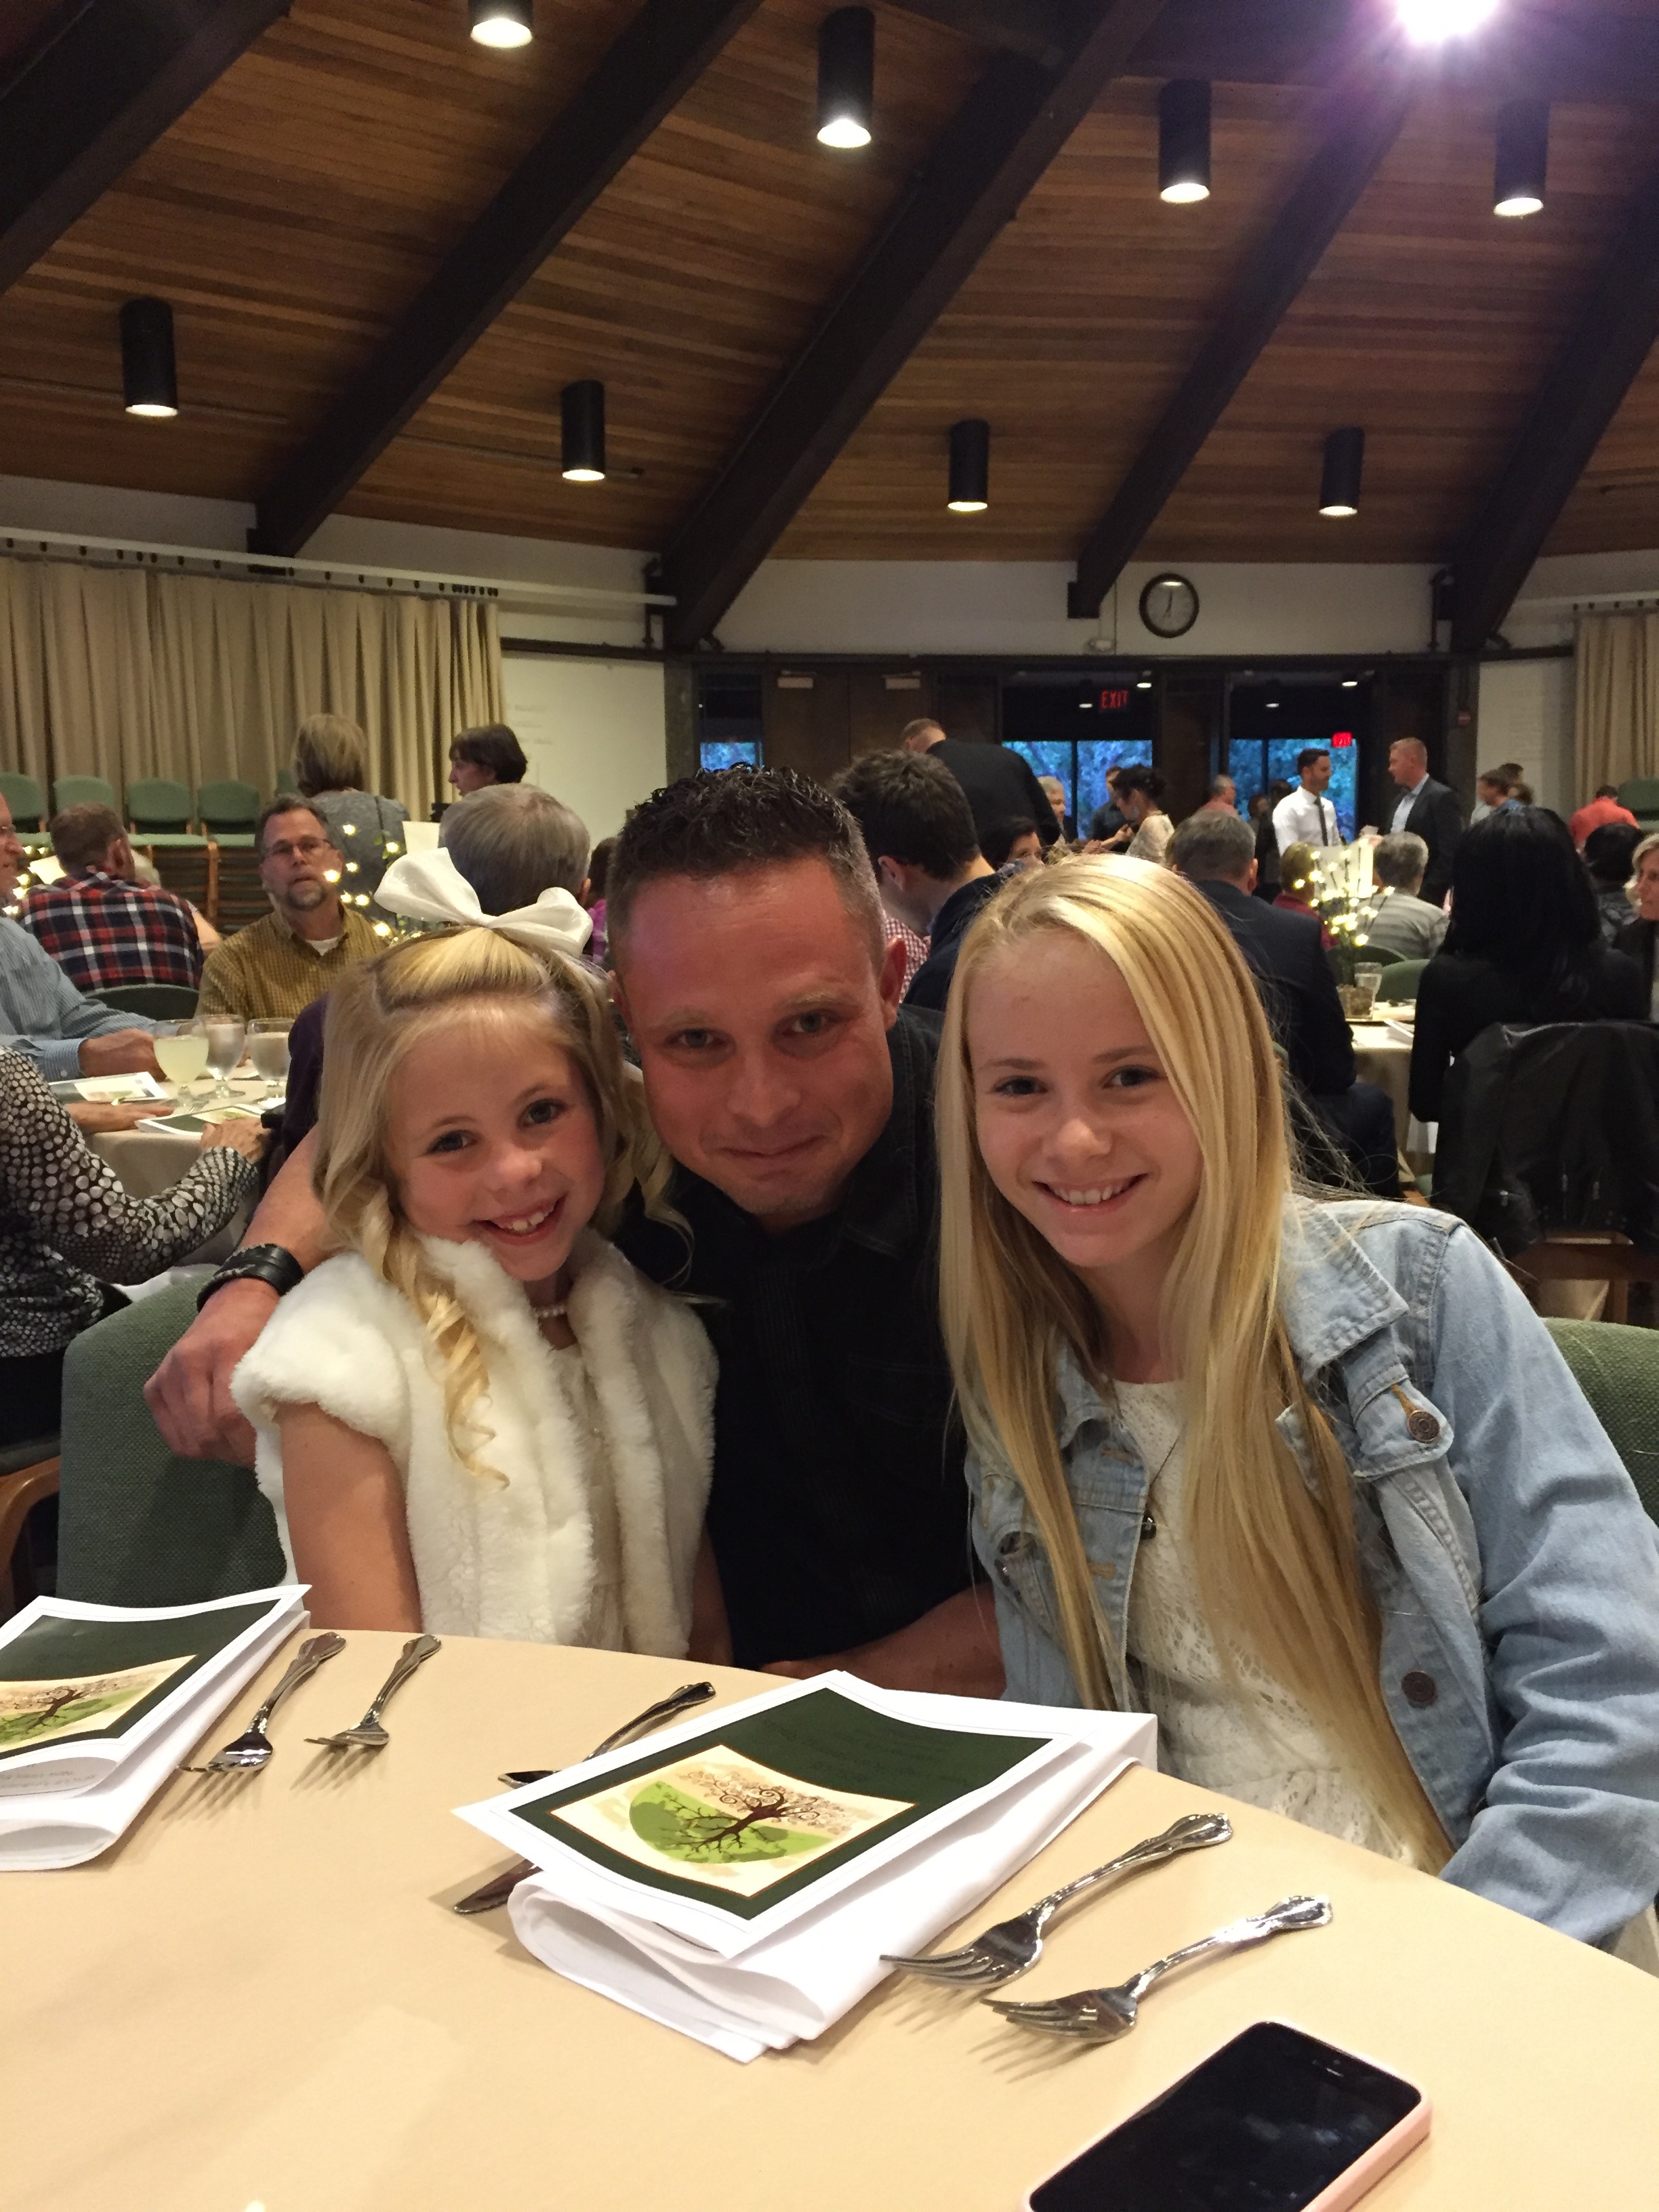 Jay and his girls, Ava and Macy.